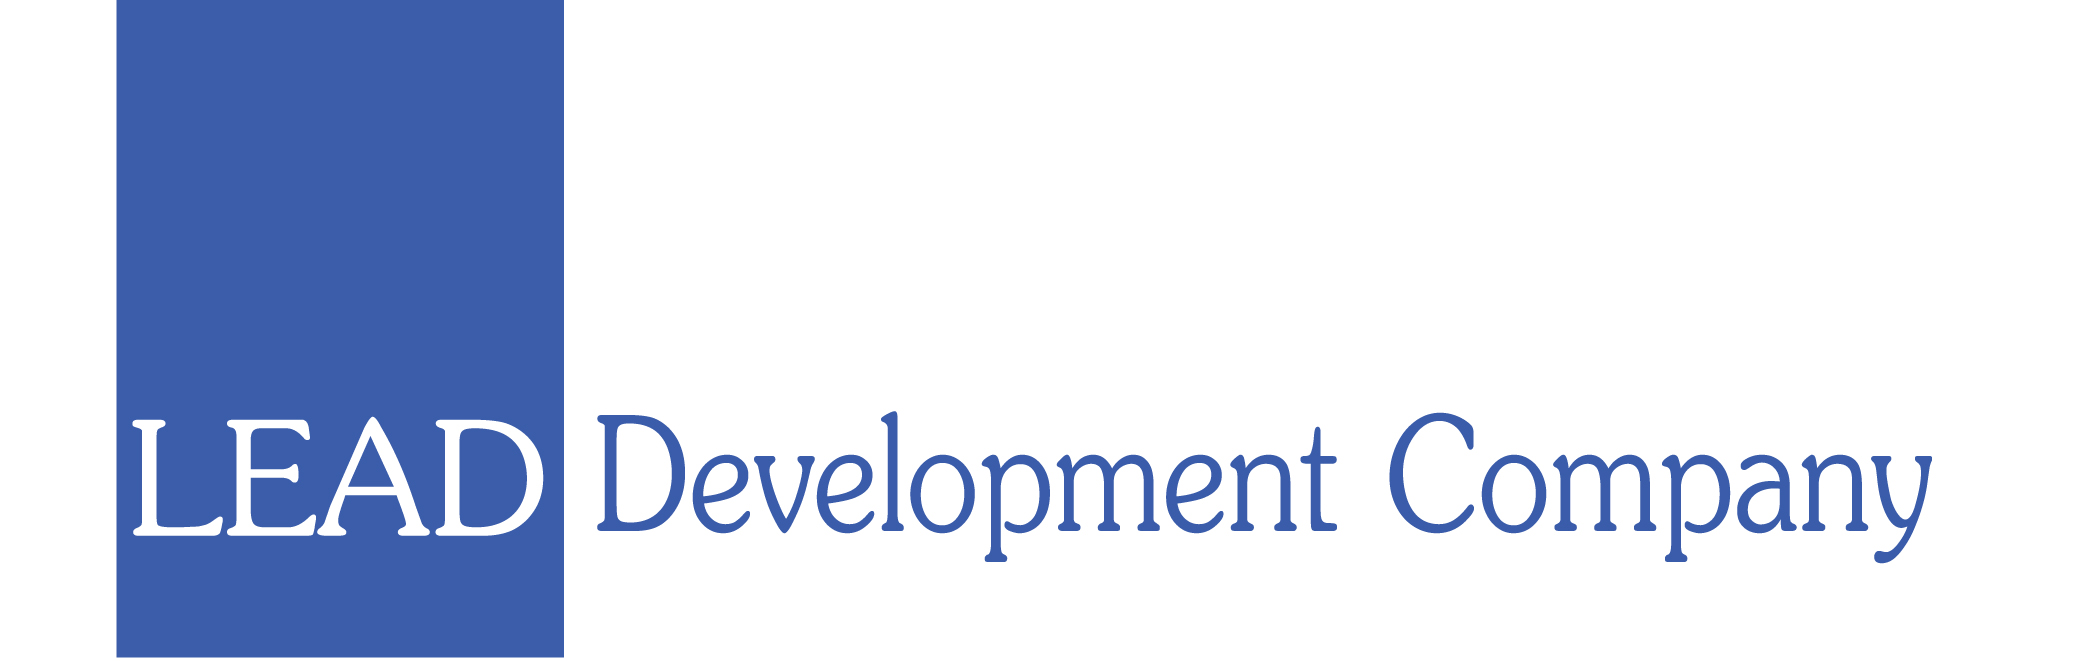 LEAD Development Company